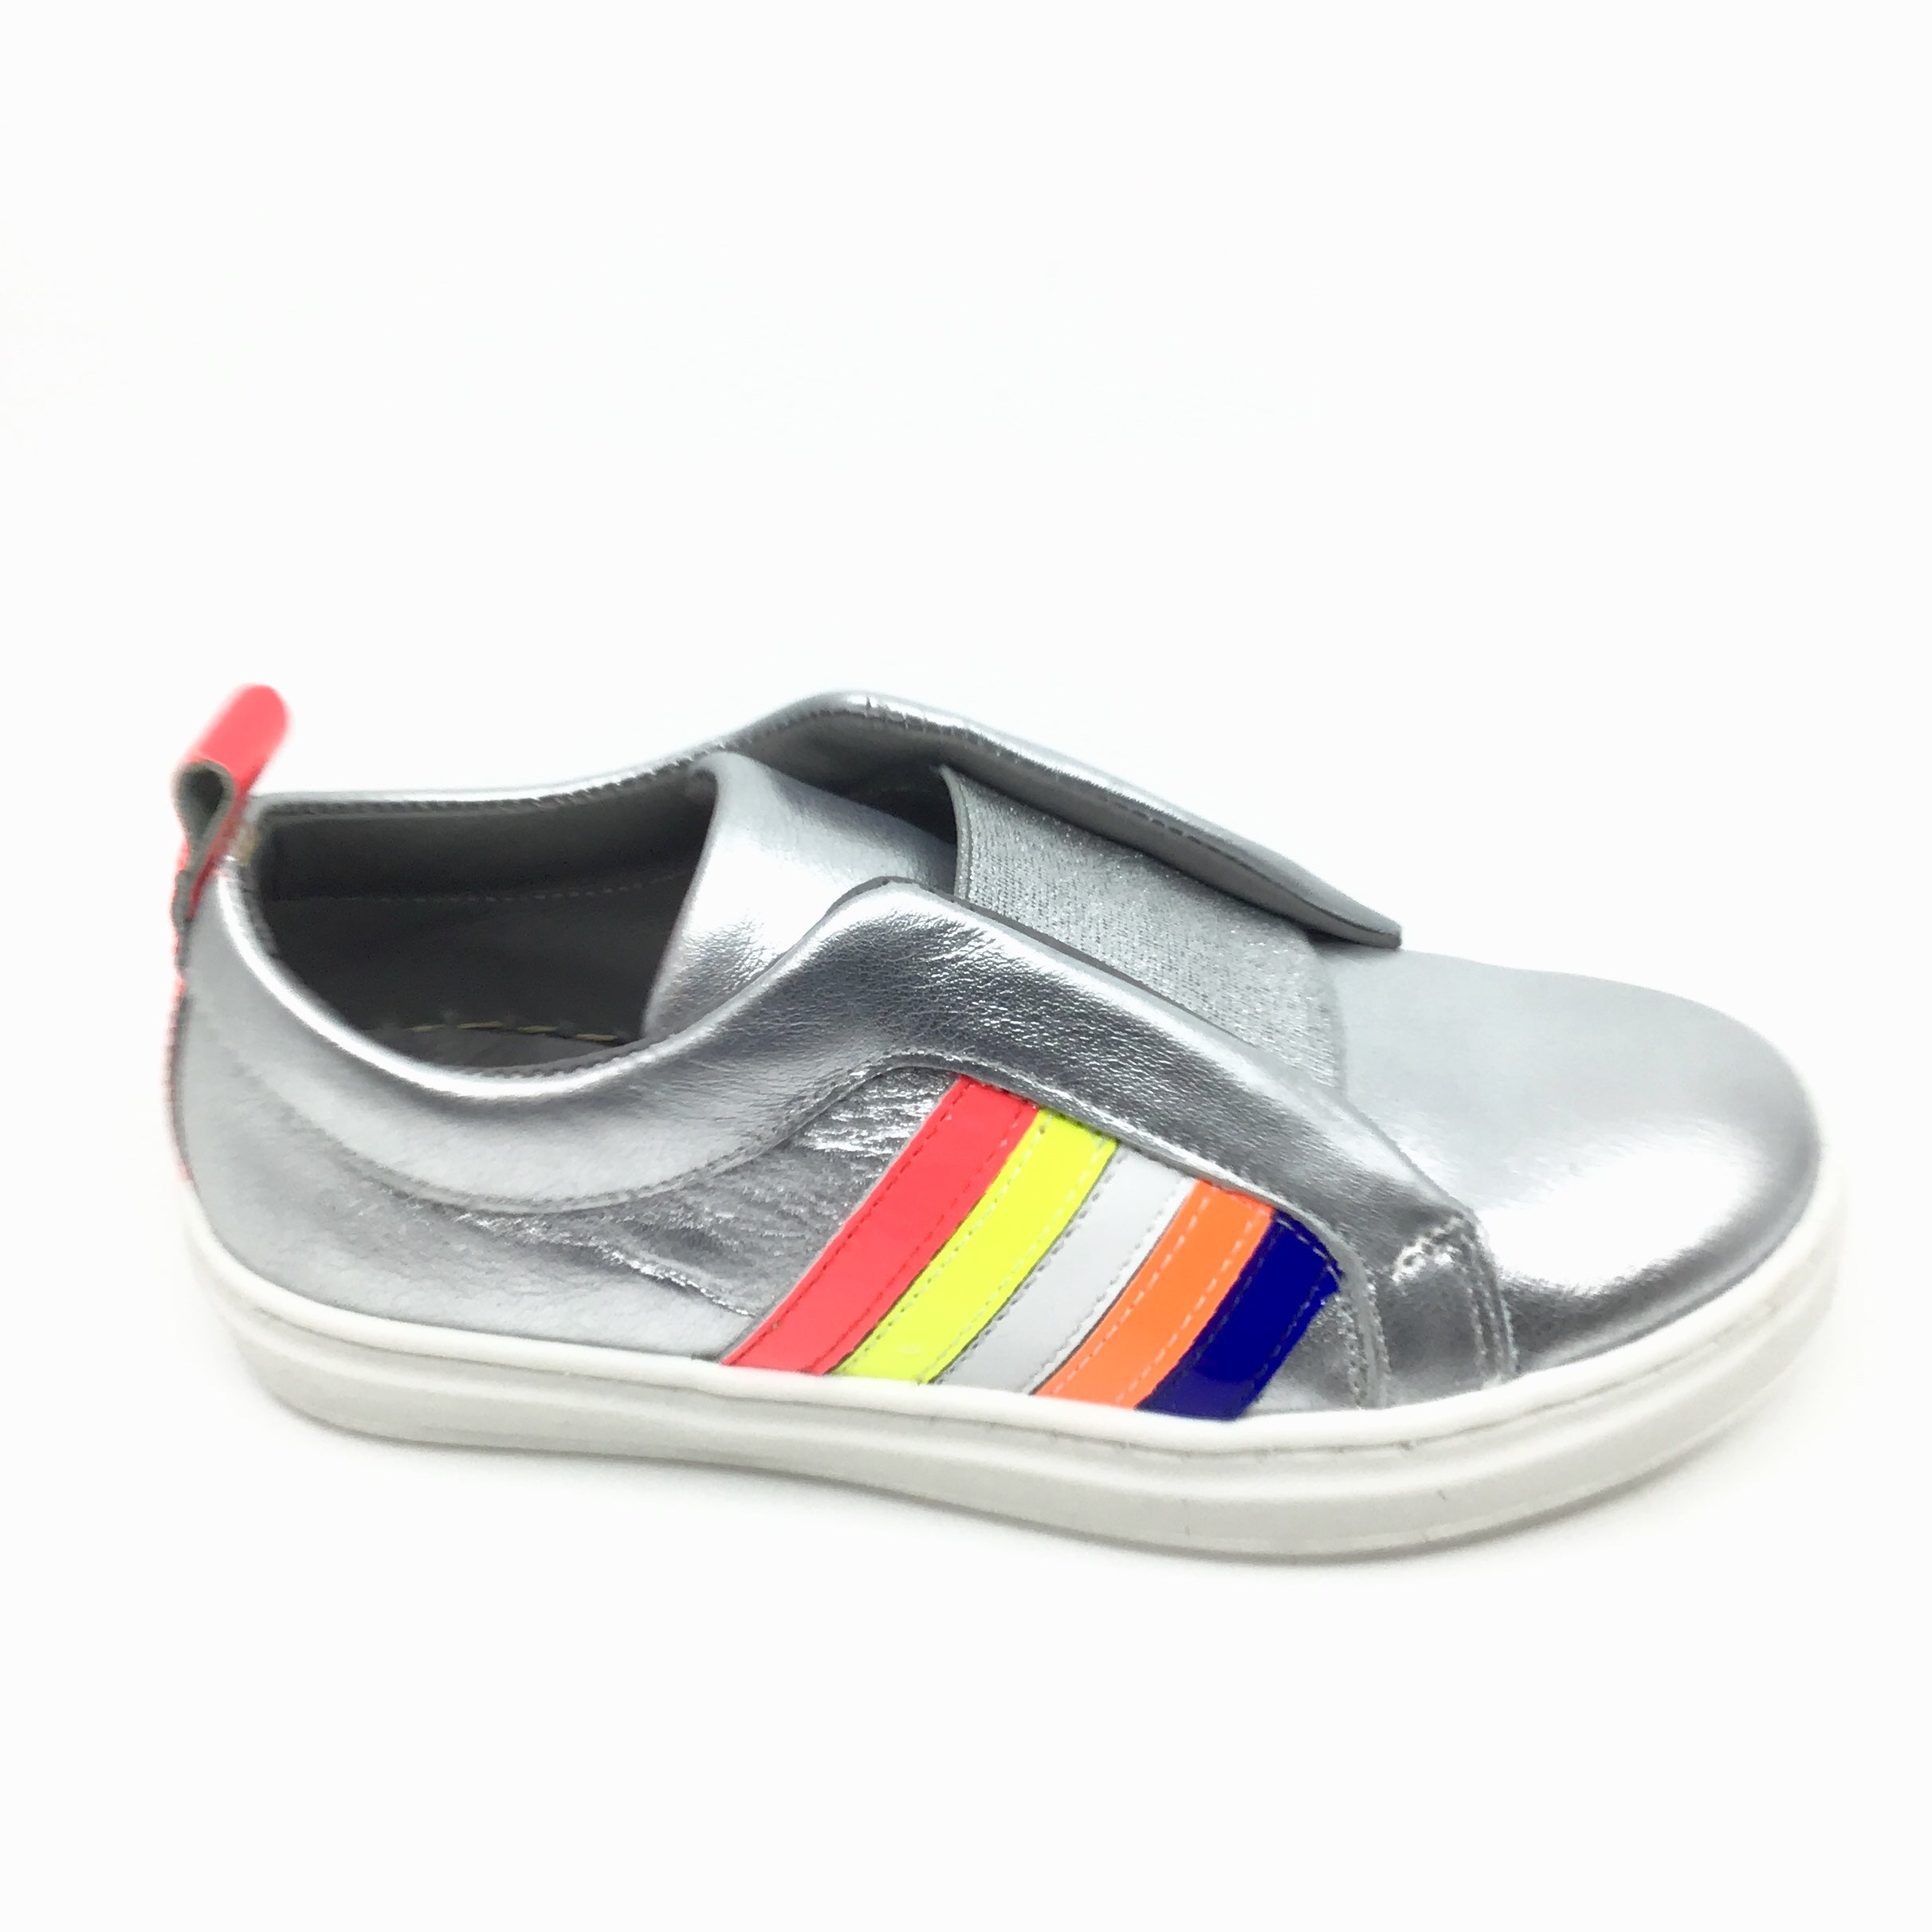 Blublonc Silver Sneaker with Rainbow Trim